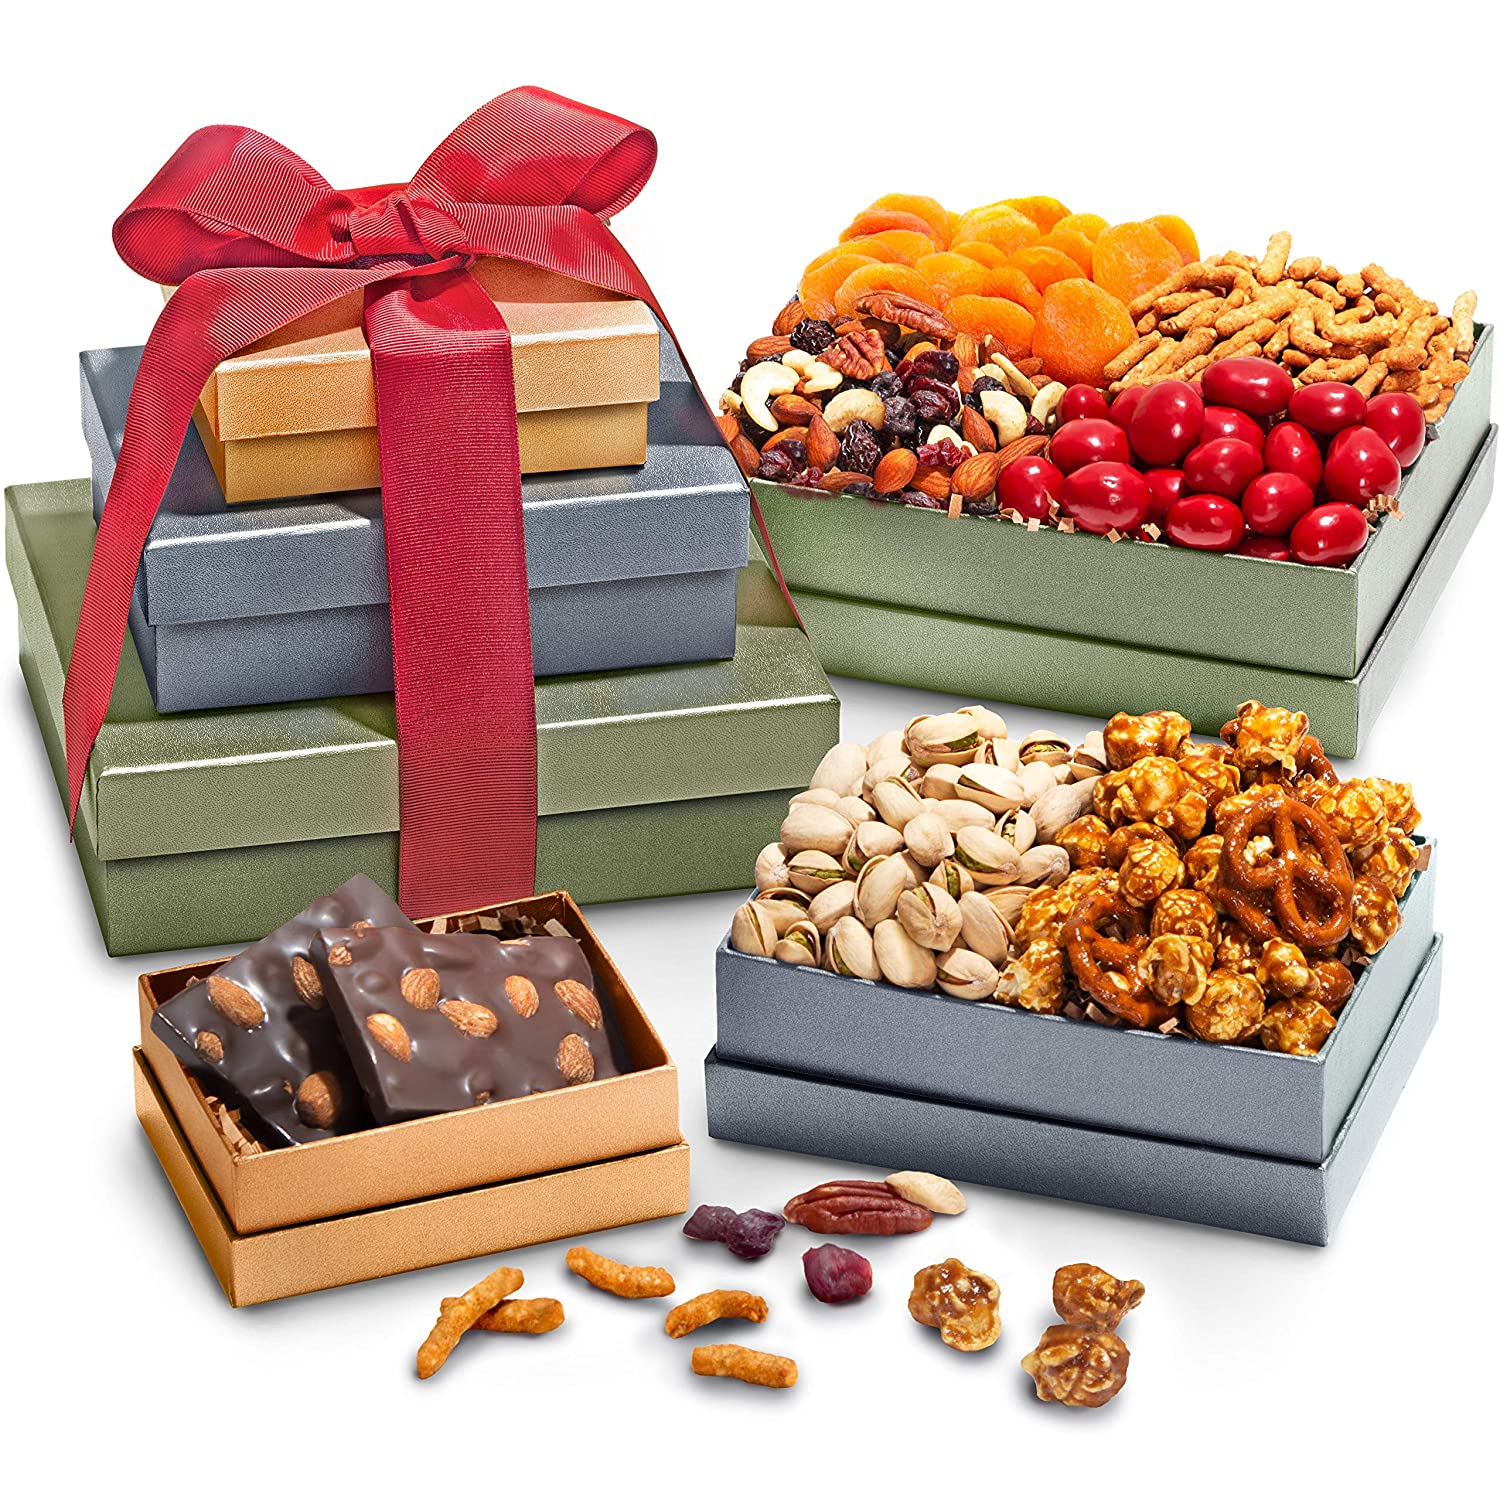 Treasure Trove Gift Tower - Gourmet Food for Holiday, Corporate Gifting